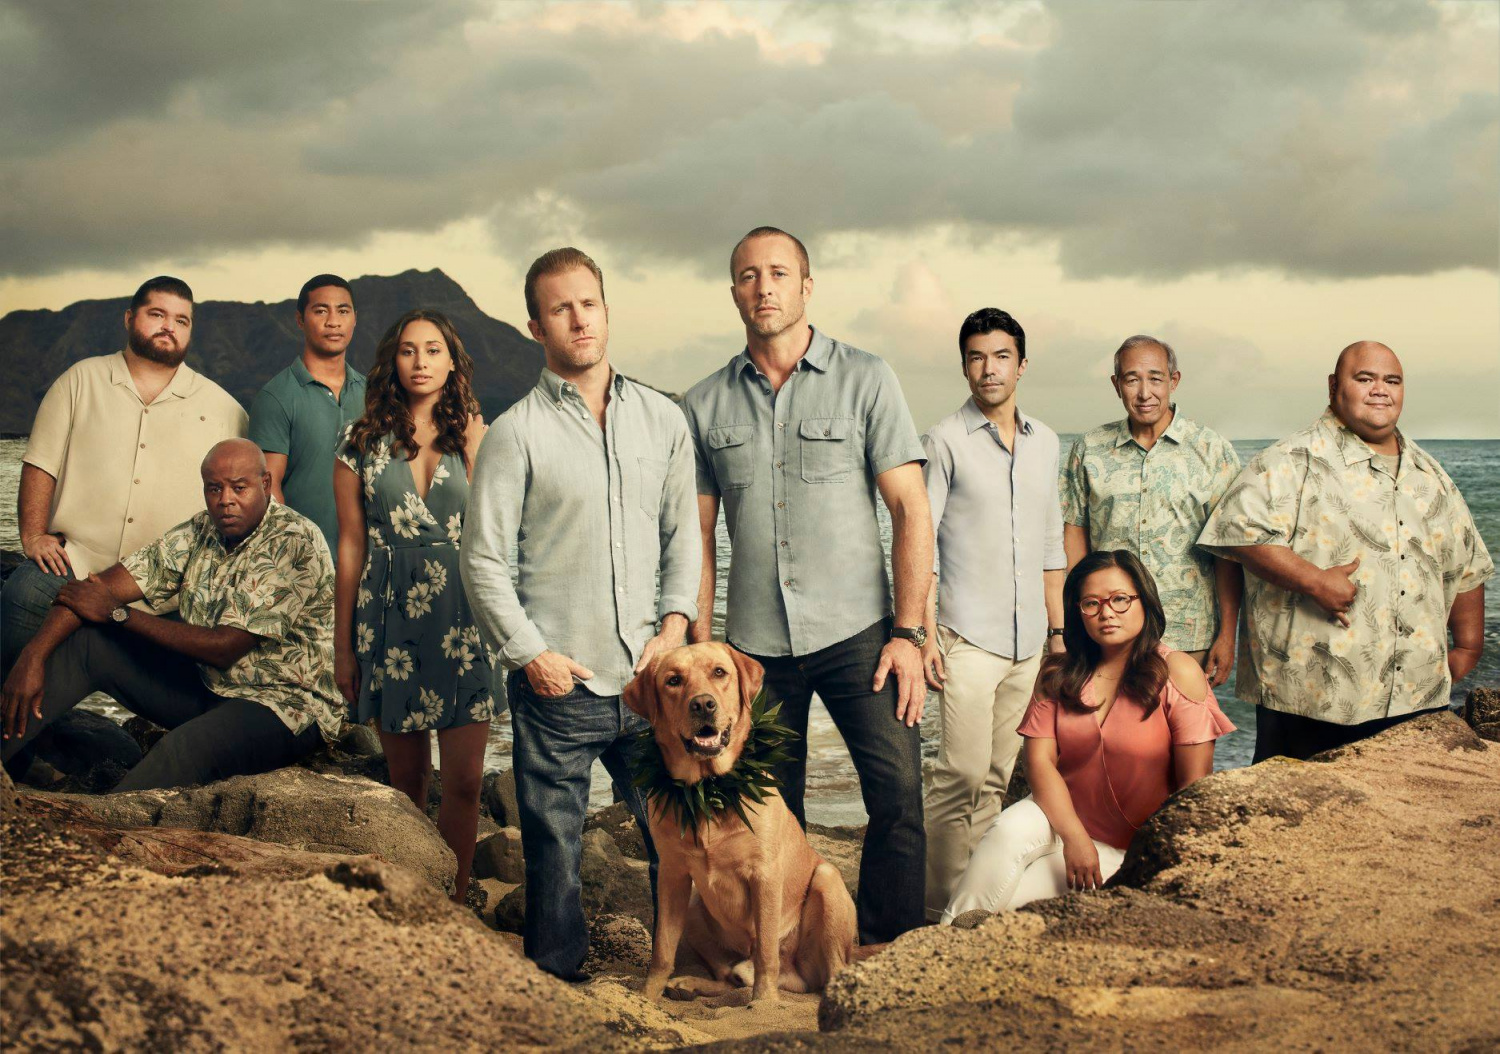 Hawaii Five-O Season 9 Episode 15 spoilers and speculation: Everything you need to know